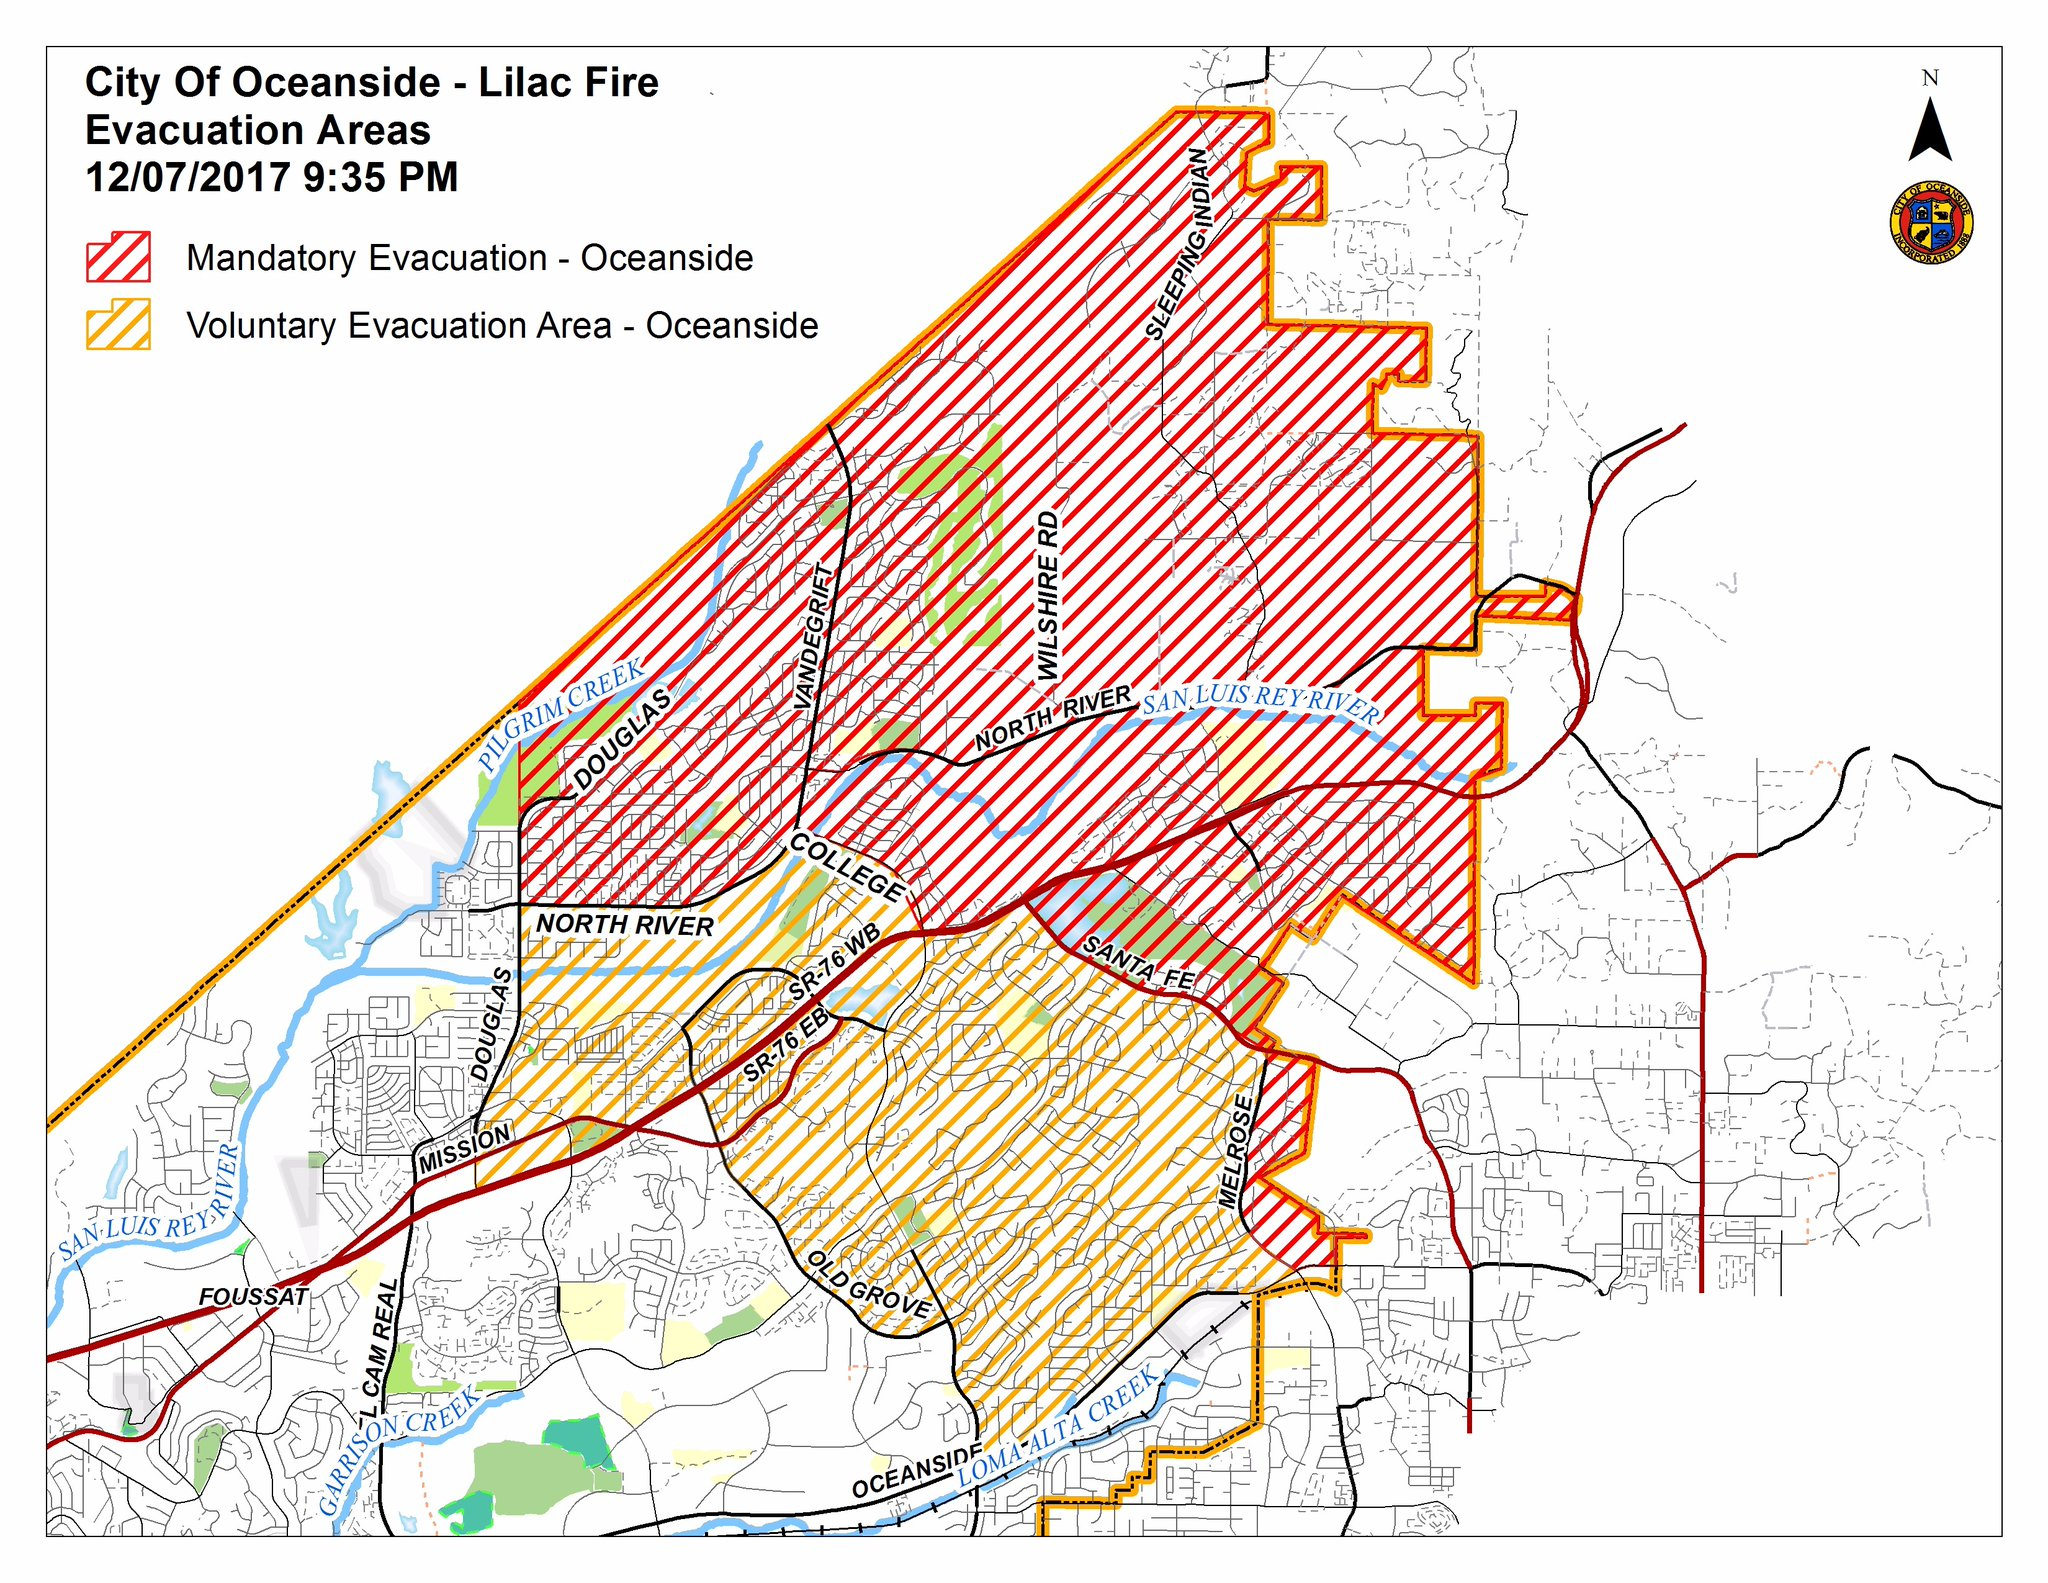 Lilac Fire Update and Fire Perimeter Map   OsideNews